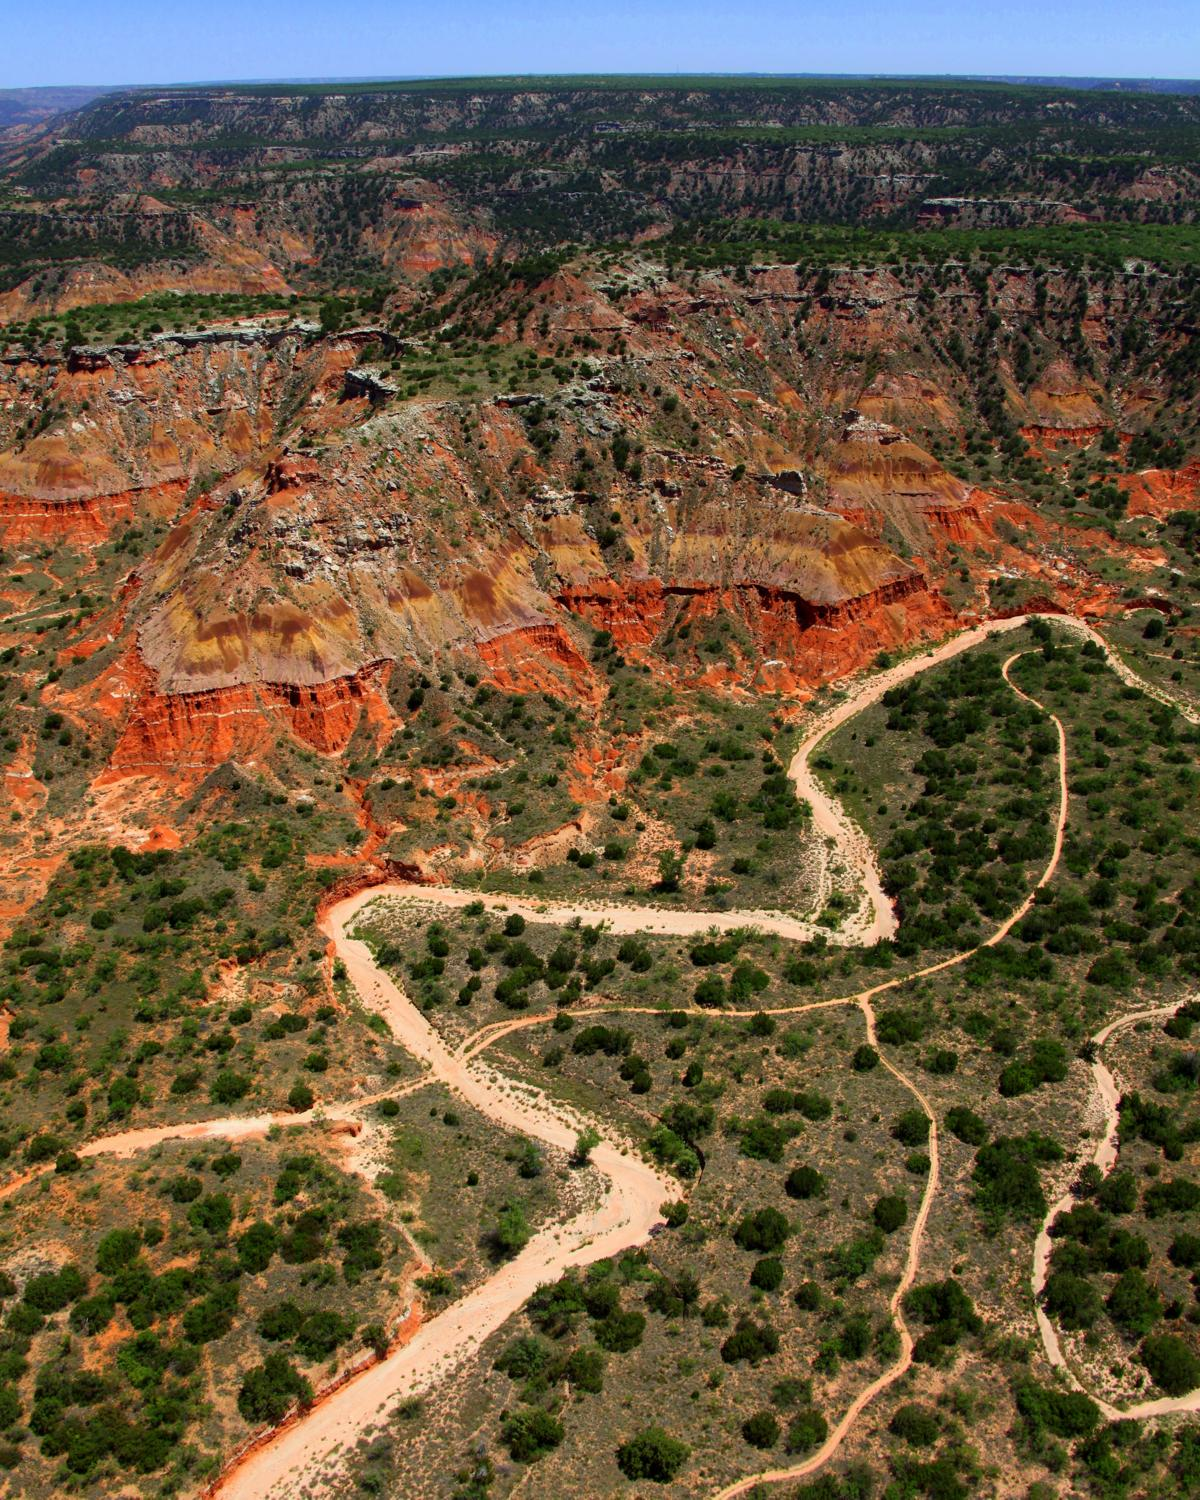 Palo Duro Canyon, Amarillo, Texas - Amarillo Aerial Photography - Drone Photography - Drone Video - Amarillo, TX